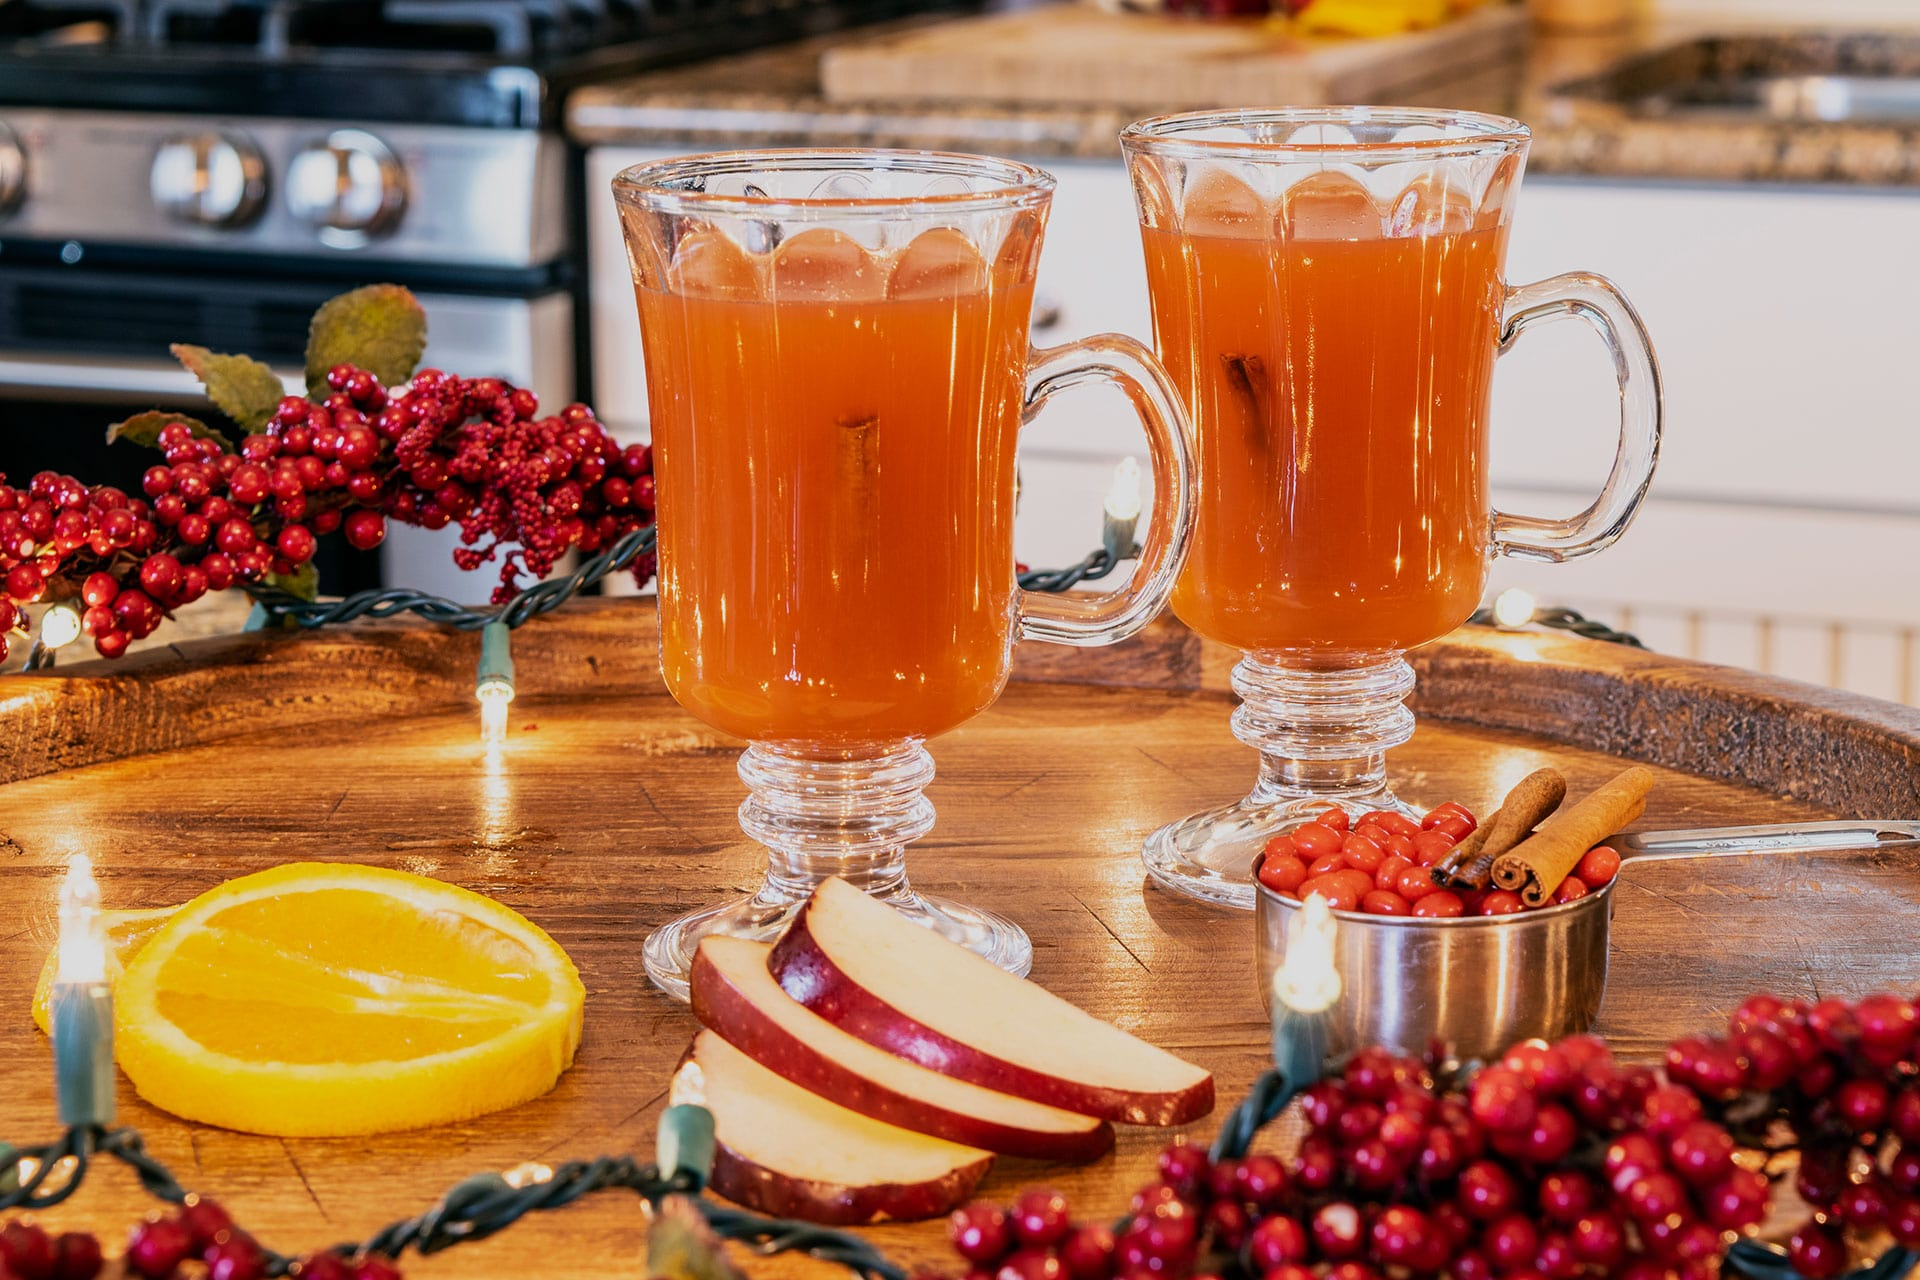 Easy Stove-top Spiced Cider Drink